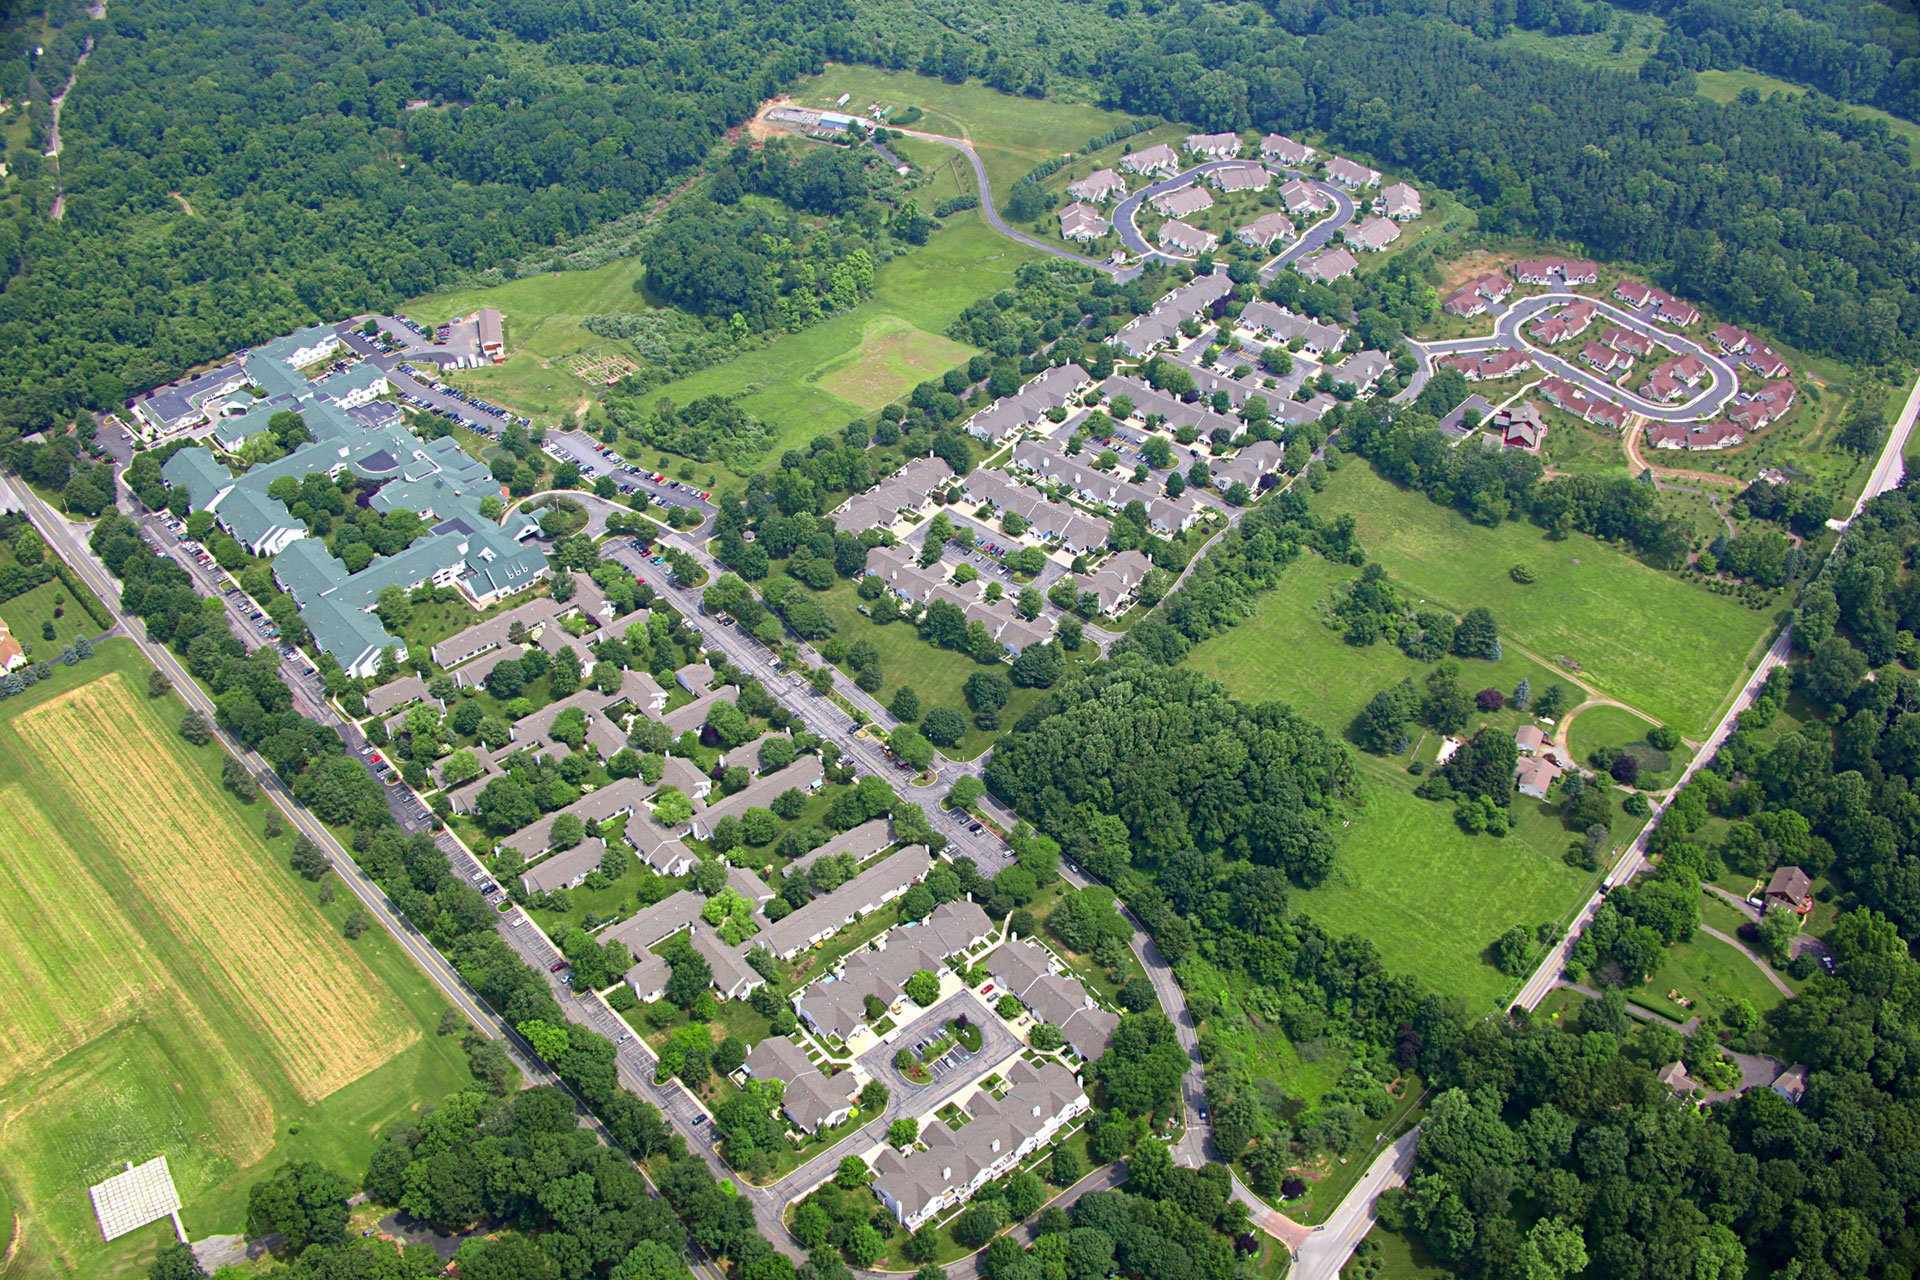 Aerial photo of the scenic White Horse Village senior living community